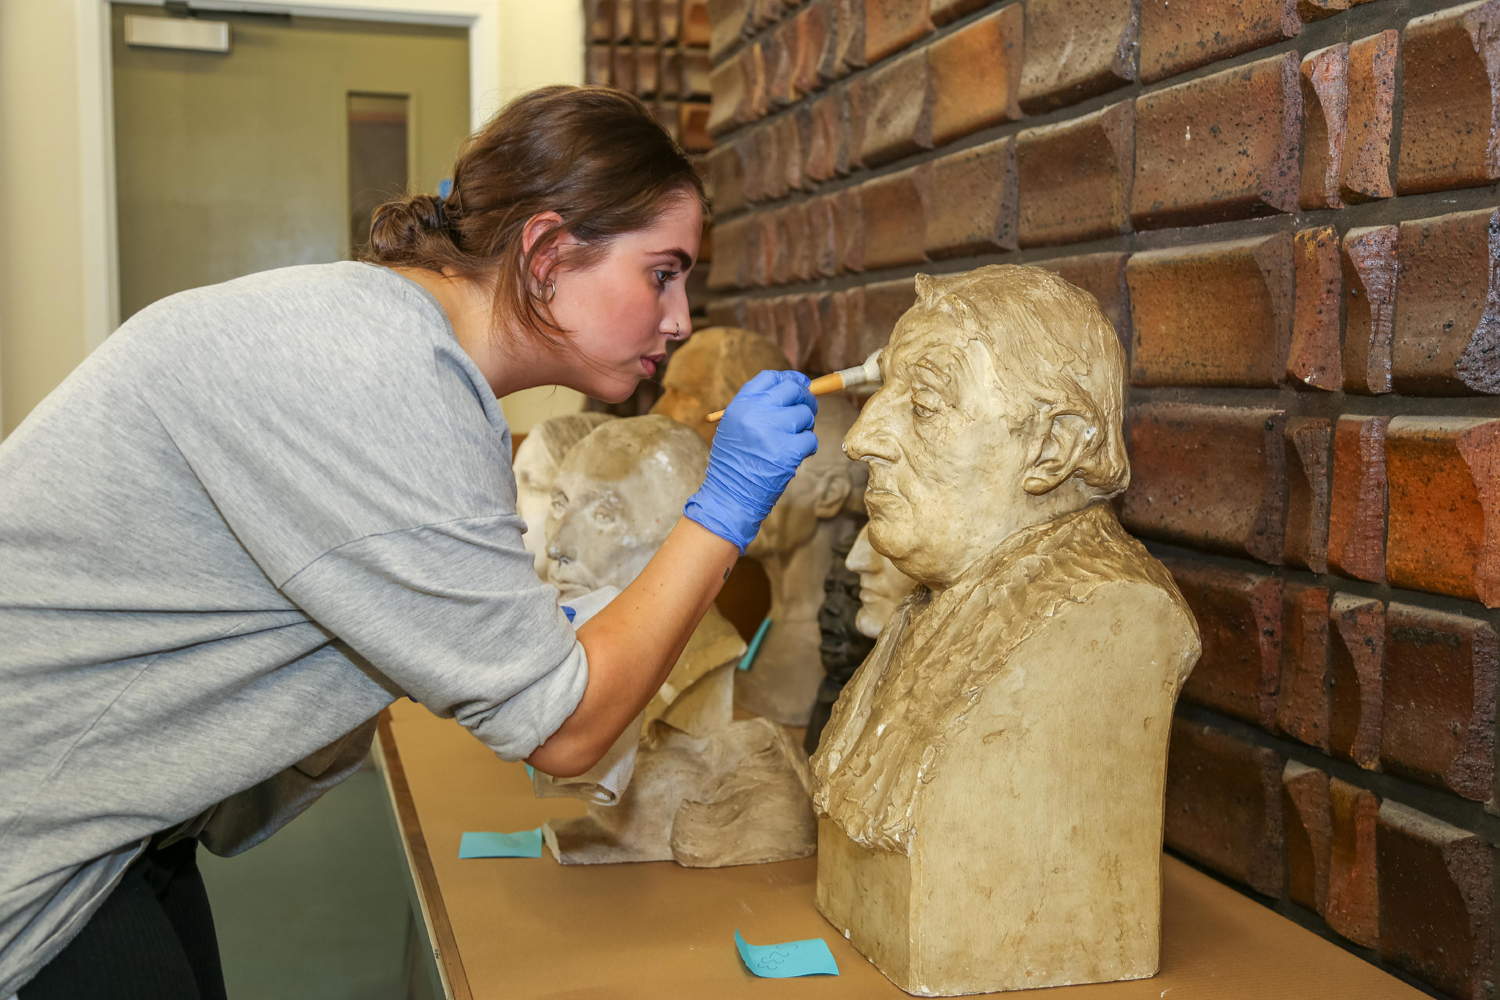 Conservator Charlotte Hanmore cleans sculptures at the Beecroft Gallery © the artist's estate. Photo, Art UK alt